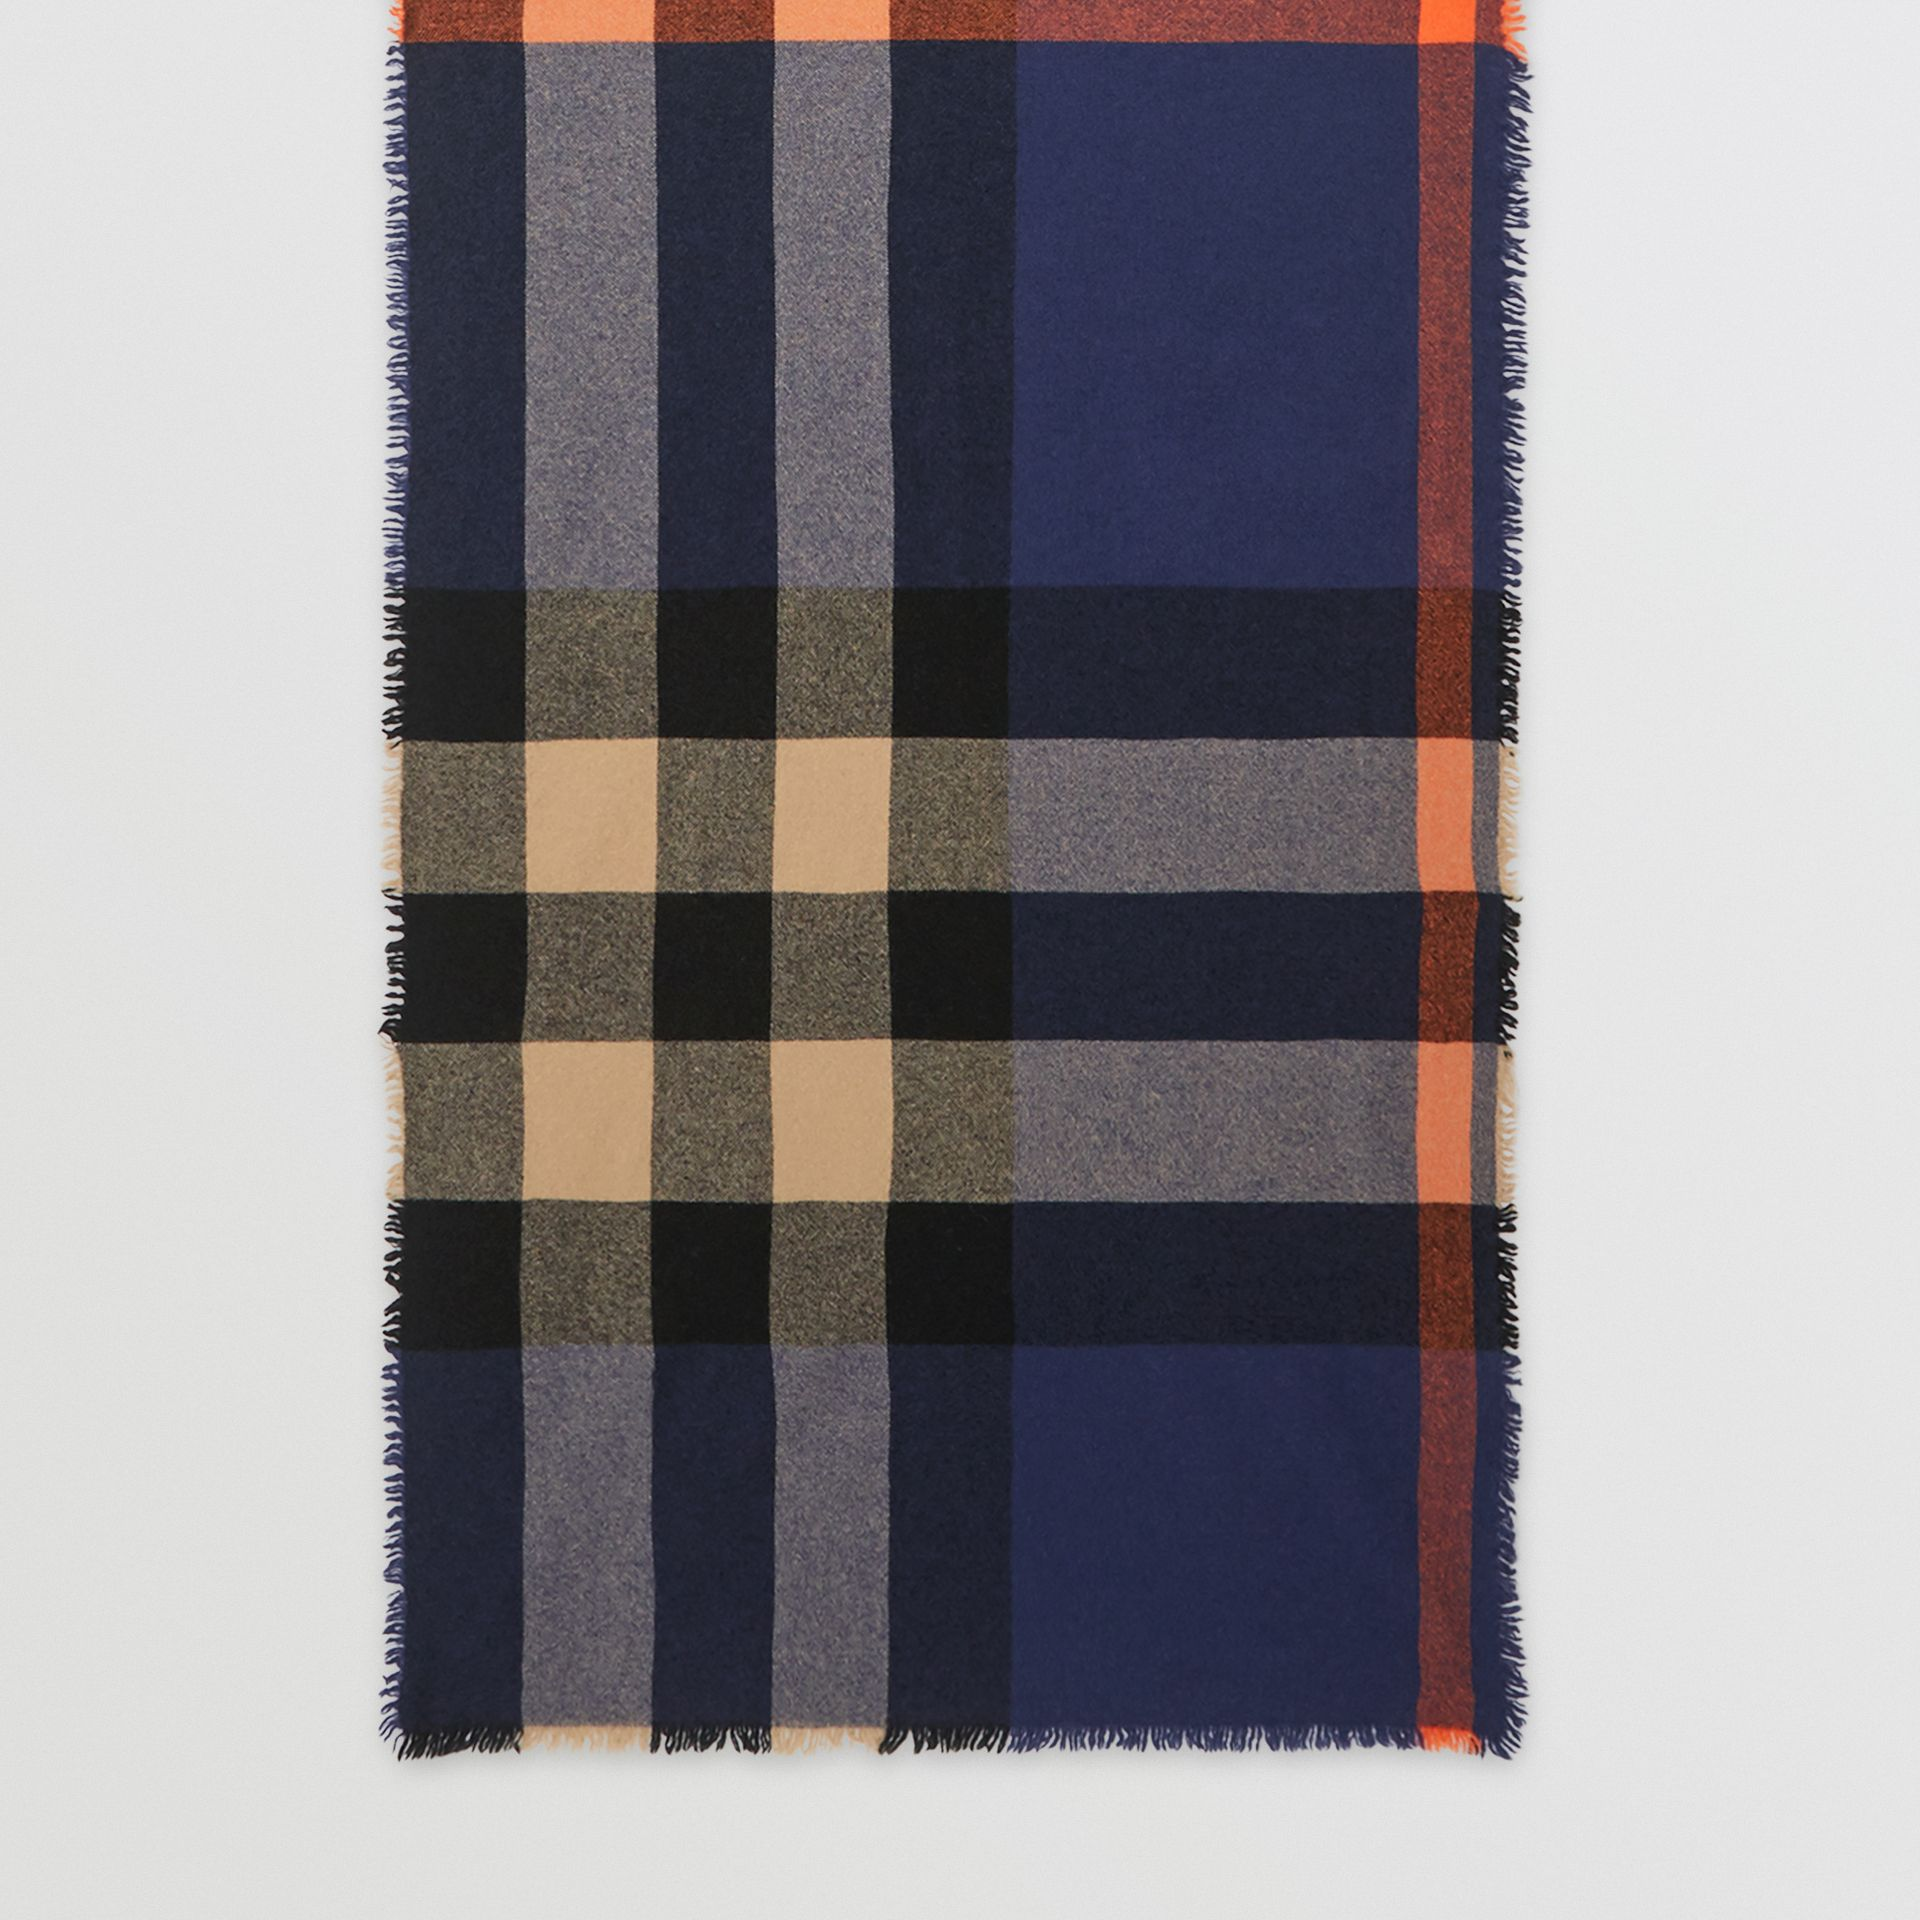 Fringed Check Wool Cashmere Scarf in Ink Blue | Burberry - gallery image 4